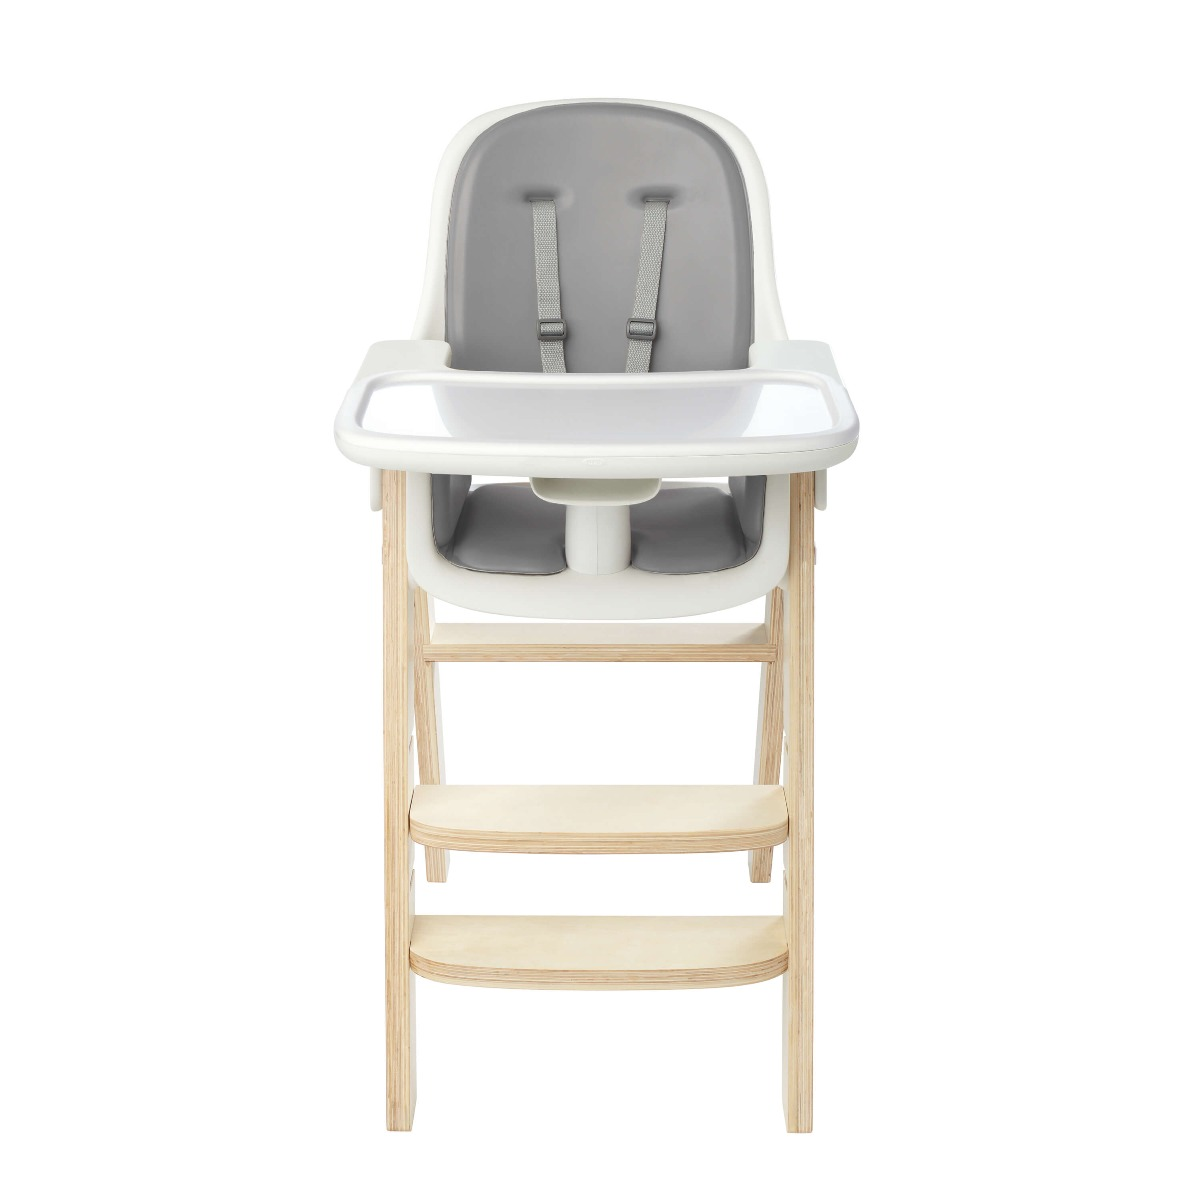 Oxo Tot Sprout™ Chair - Gray/birch